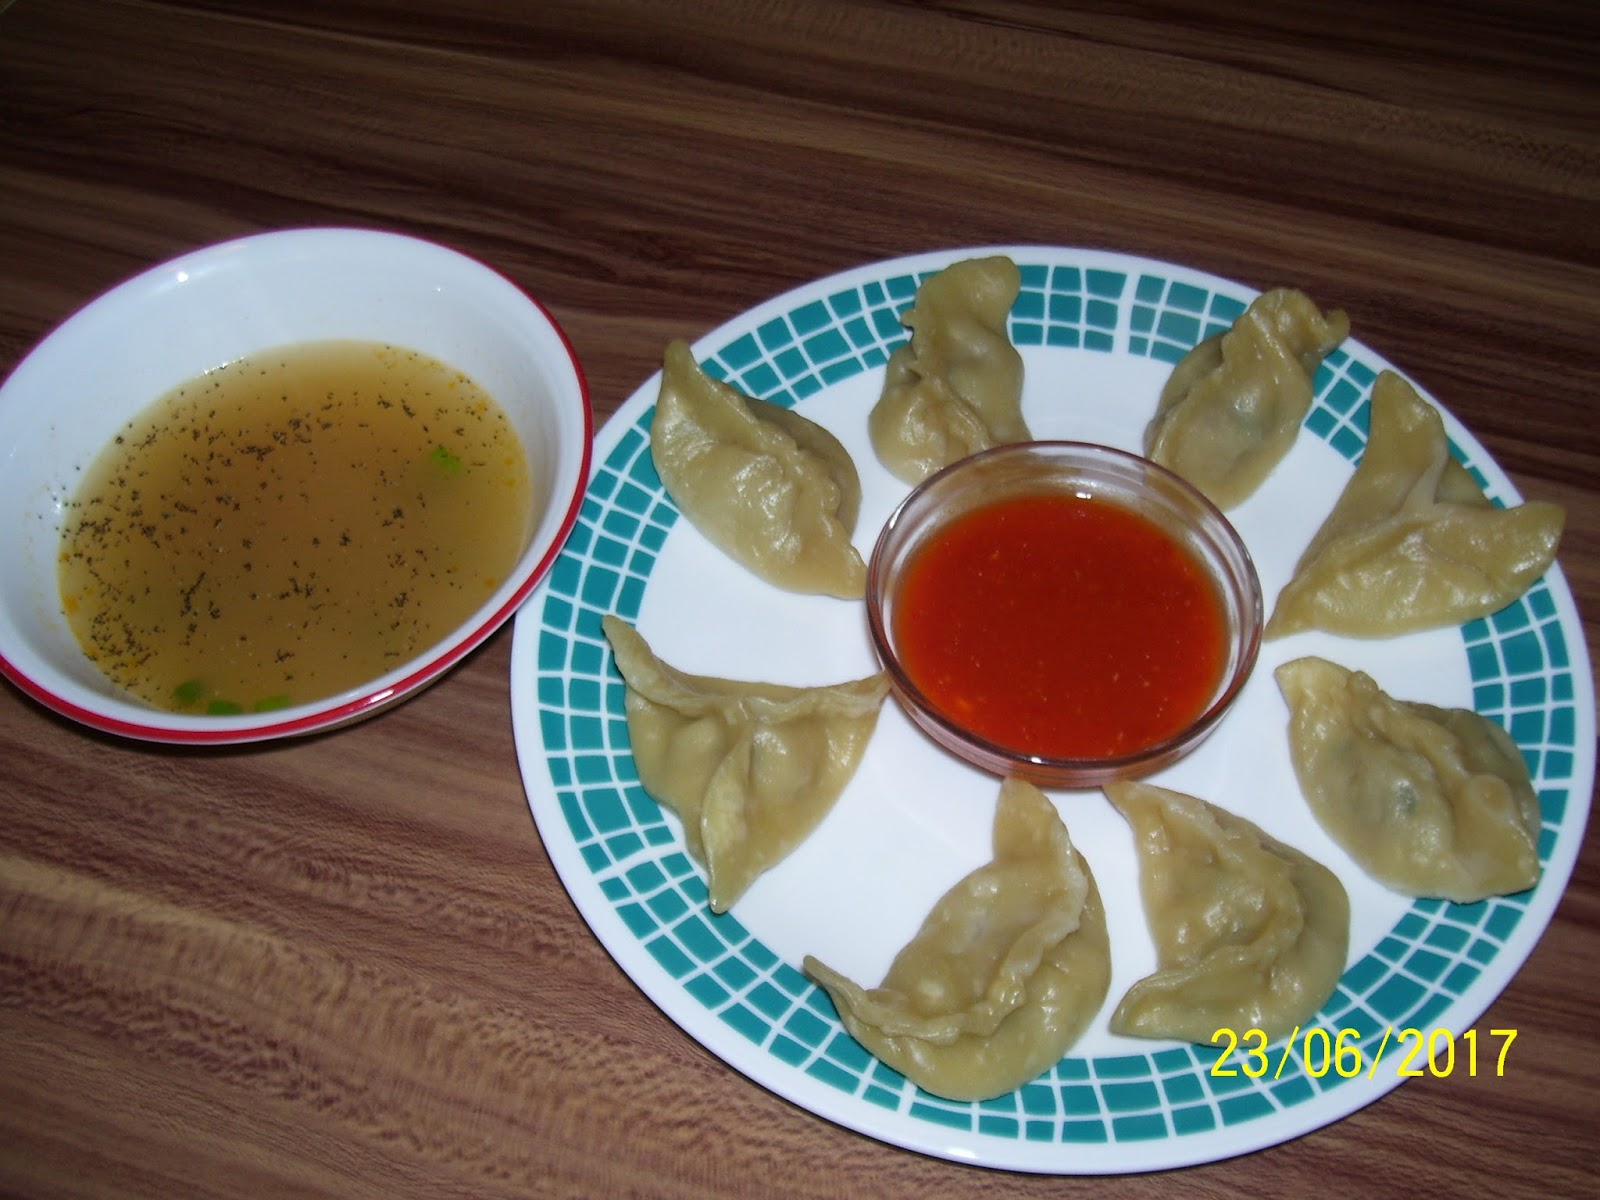 Kitchen with a purpose nepali steamed chicken momo with dipping sauce minced chicken garlic onion dry ginger powder cilantro and other aromatics from homemade momo masala or spice mixa recipe for spicy hot dipping sauce forumfinder